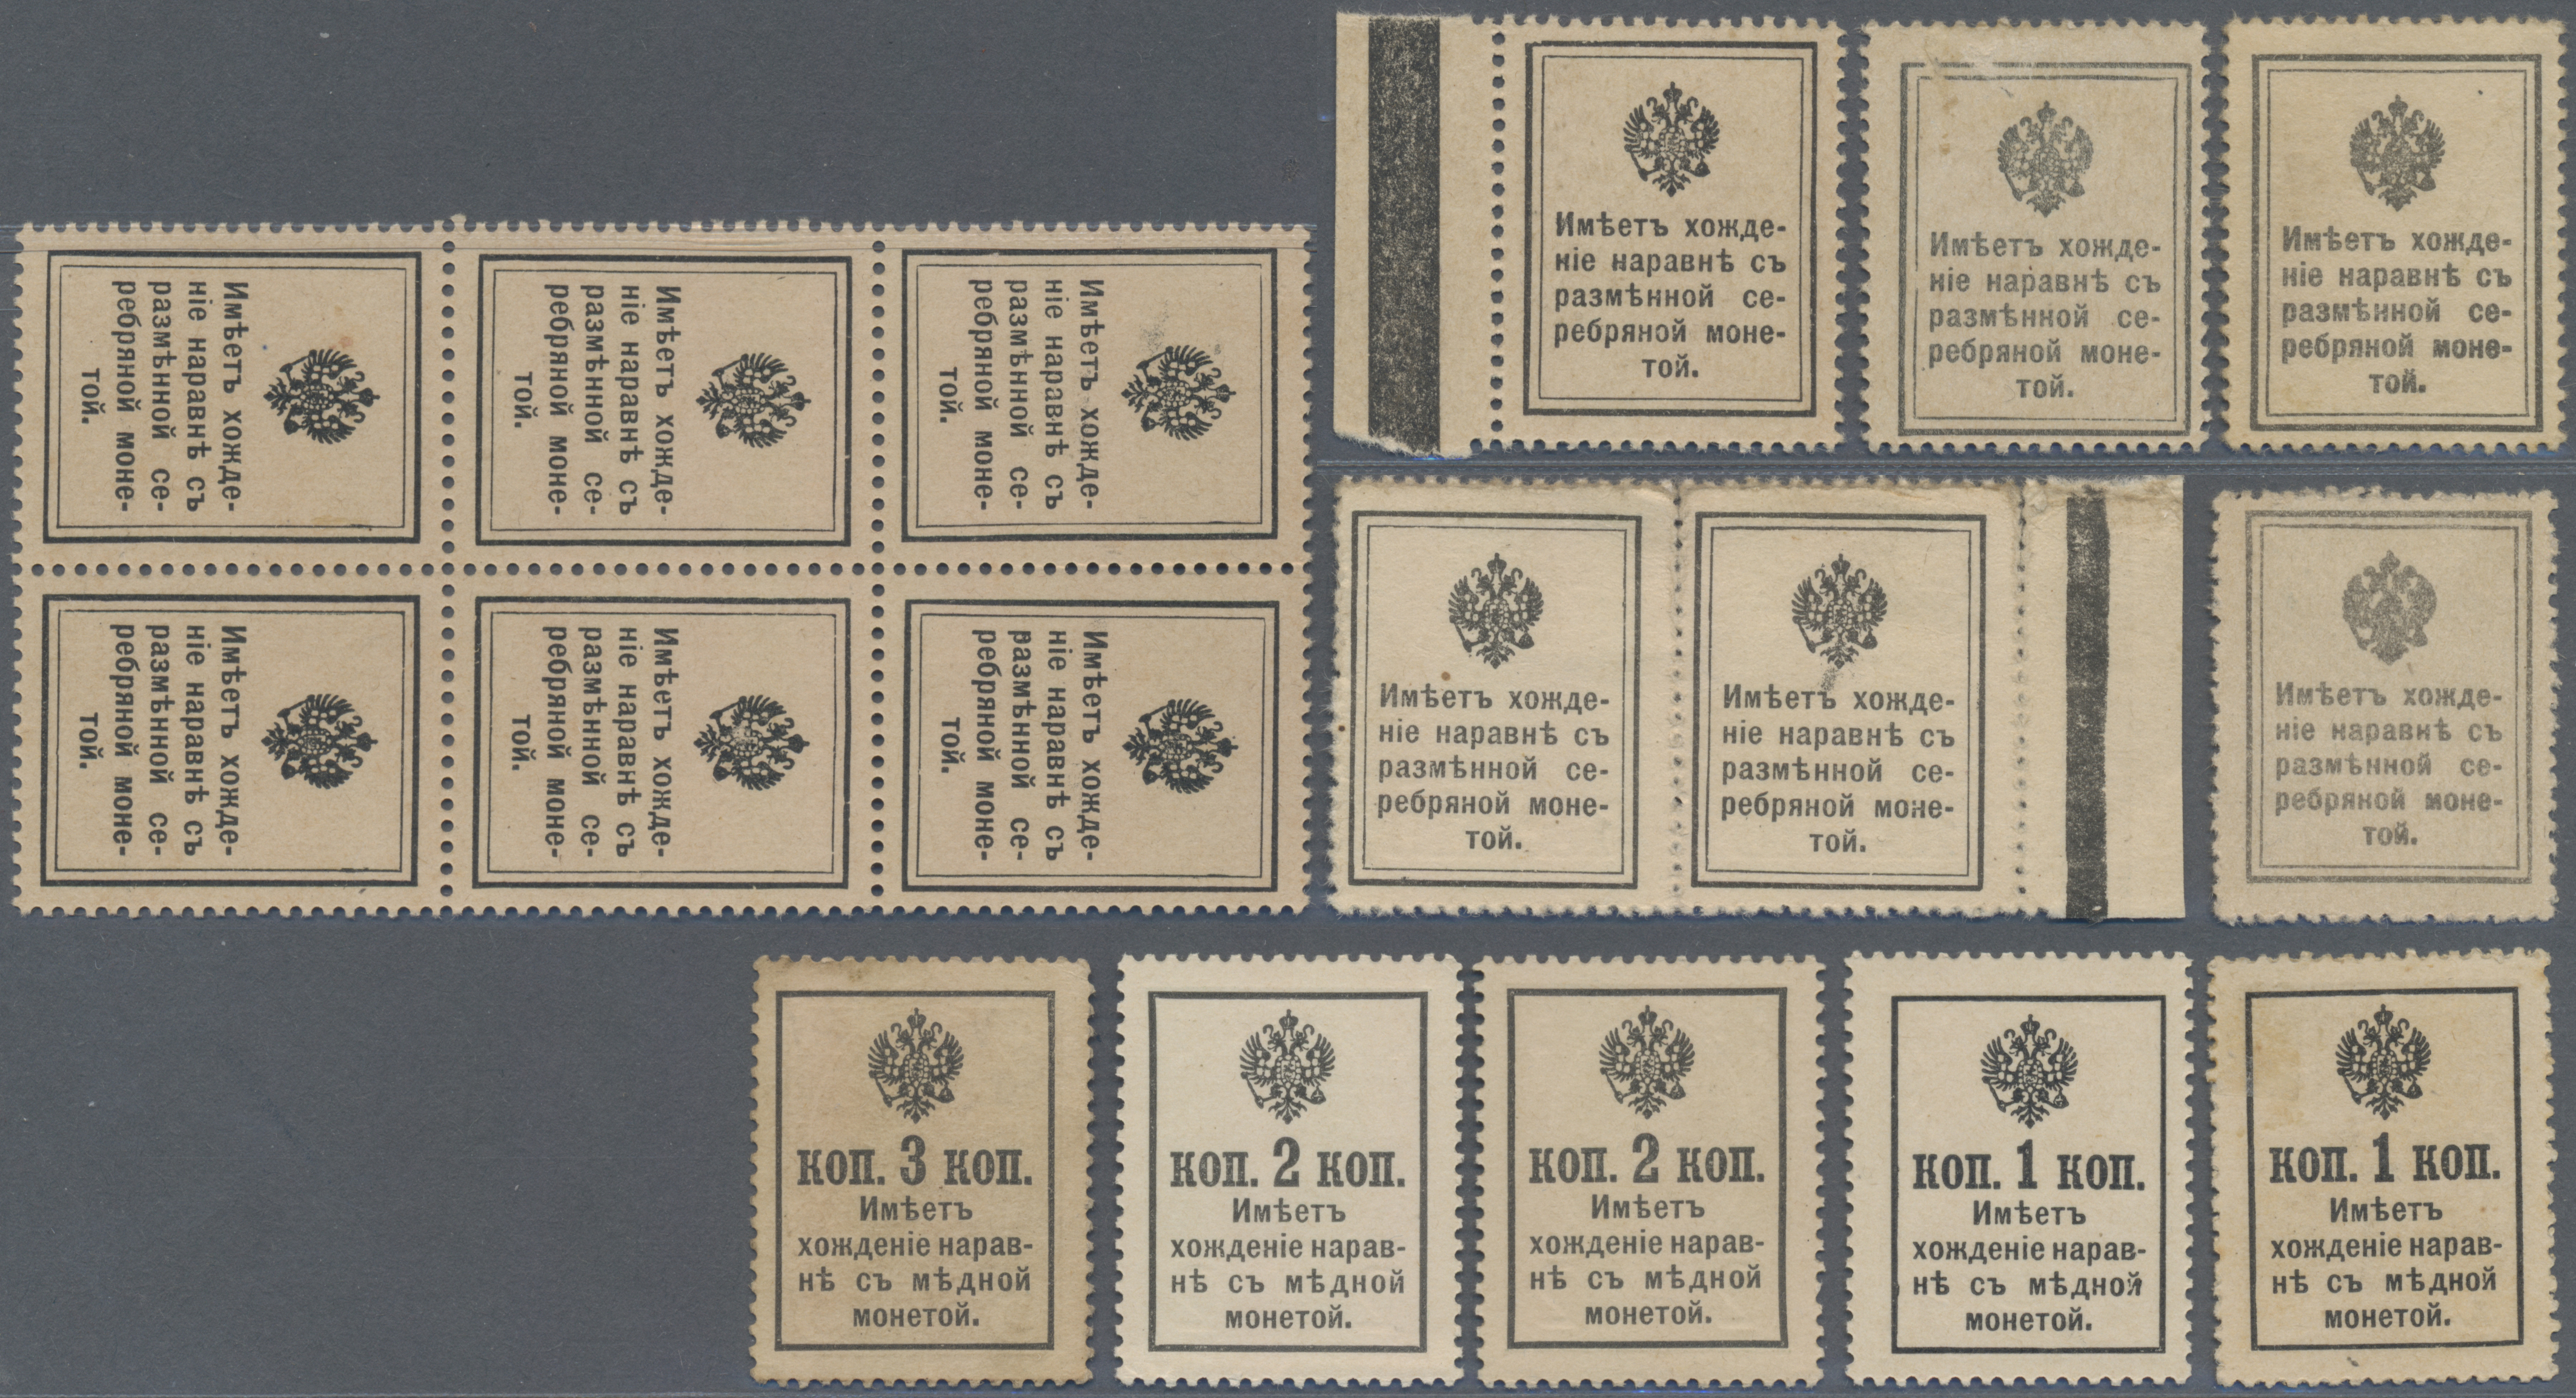 Lot 00630 - Russia / Russland | Banknoten  -  Auktionshaus Christoph Gärtner GmbH & Co. KG Sale #48 The Banknotes